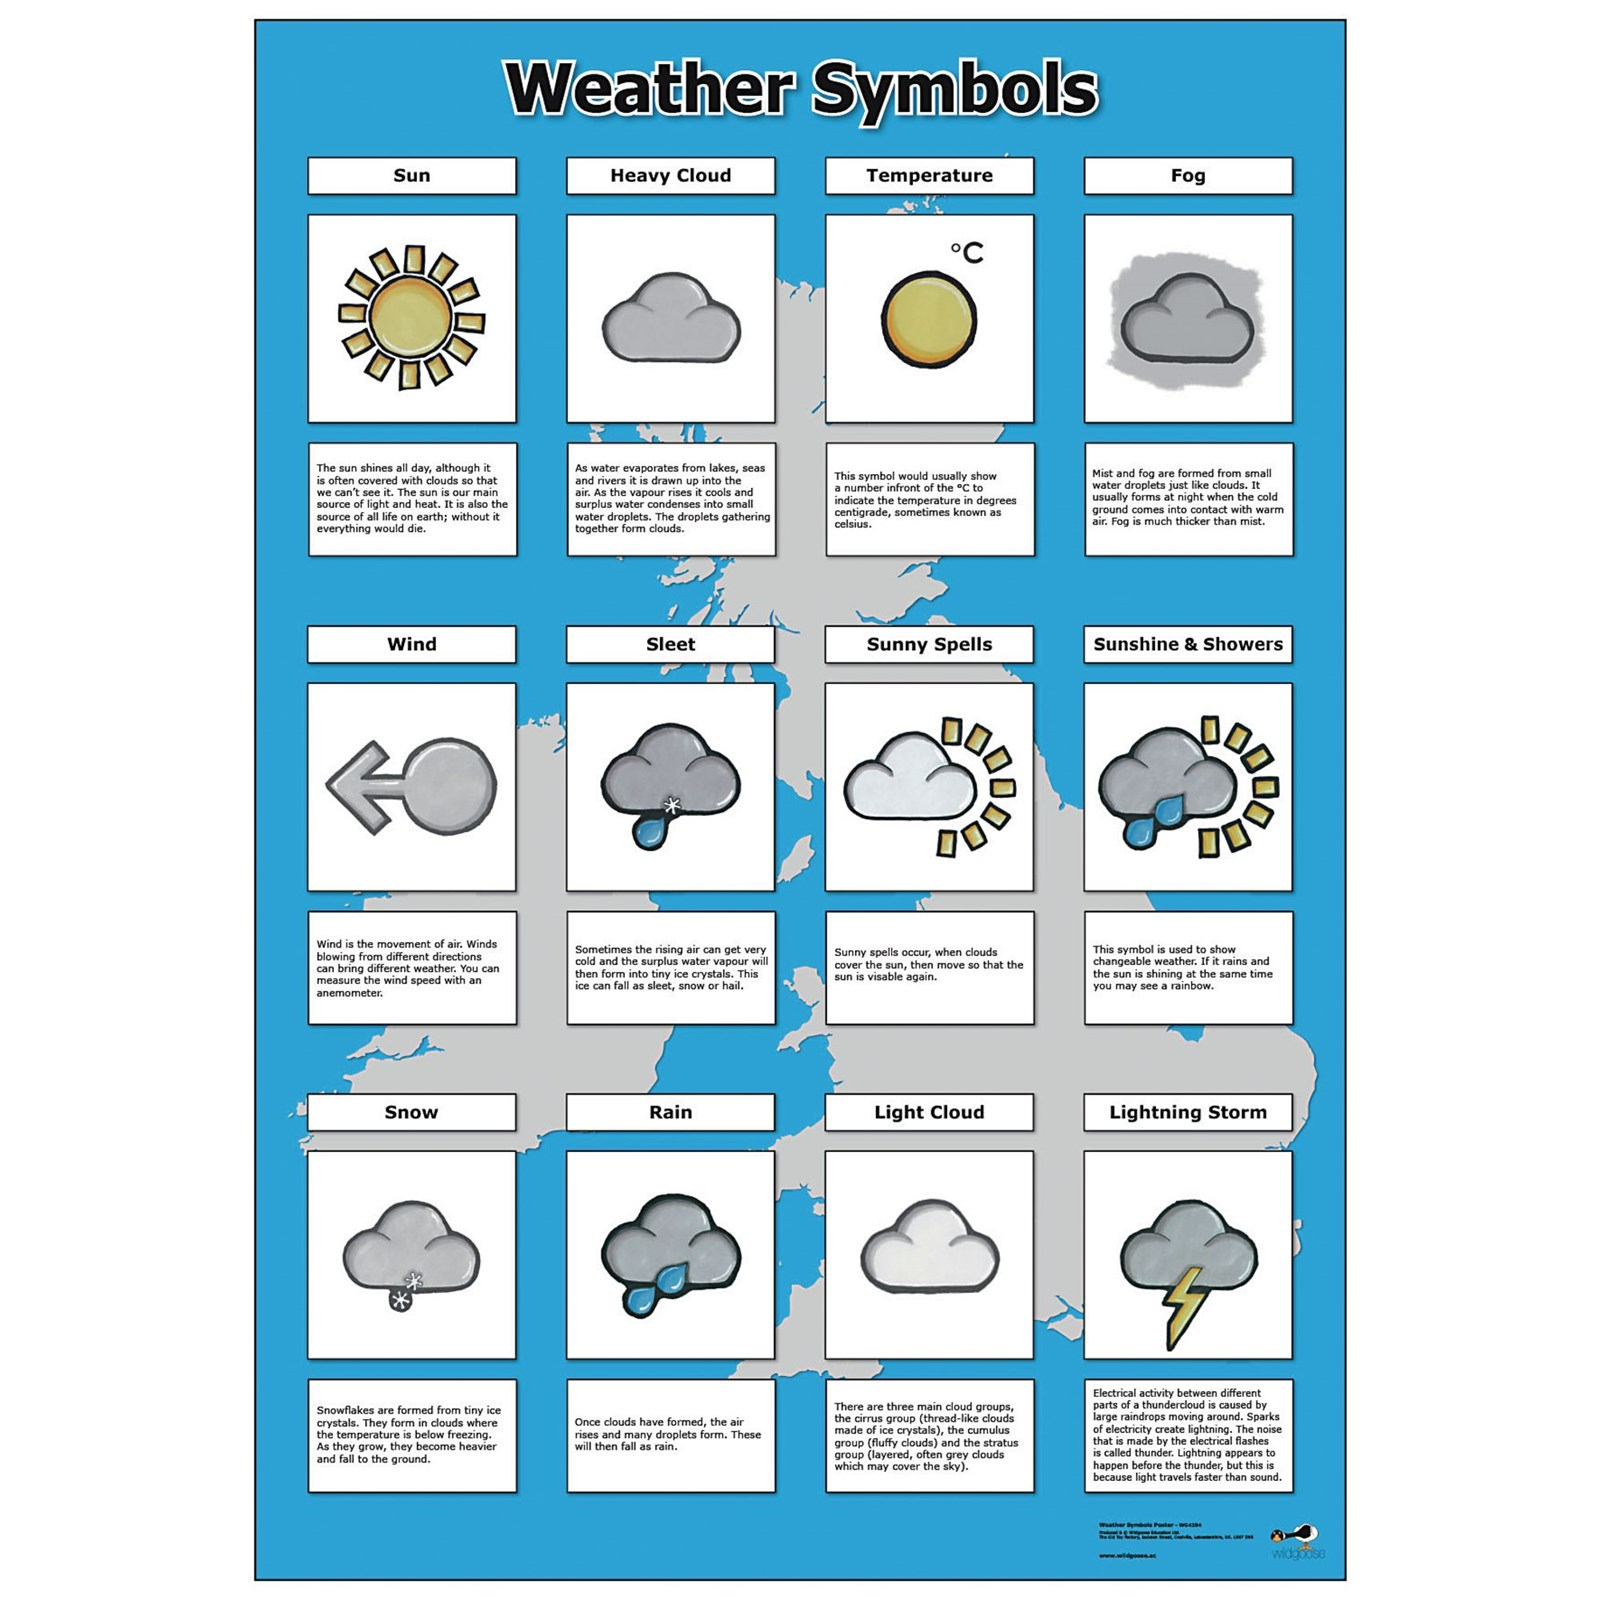 Weather symbols meaning gallery symbol and sign ideas what do the weather symbols mean image collections symbol and weather symbols meaning image collections symbol buycottarizona